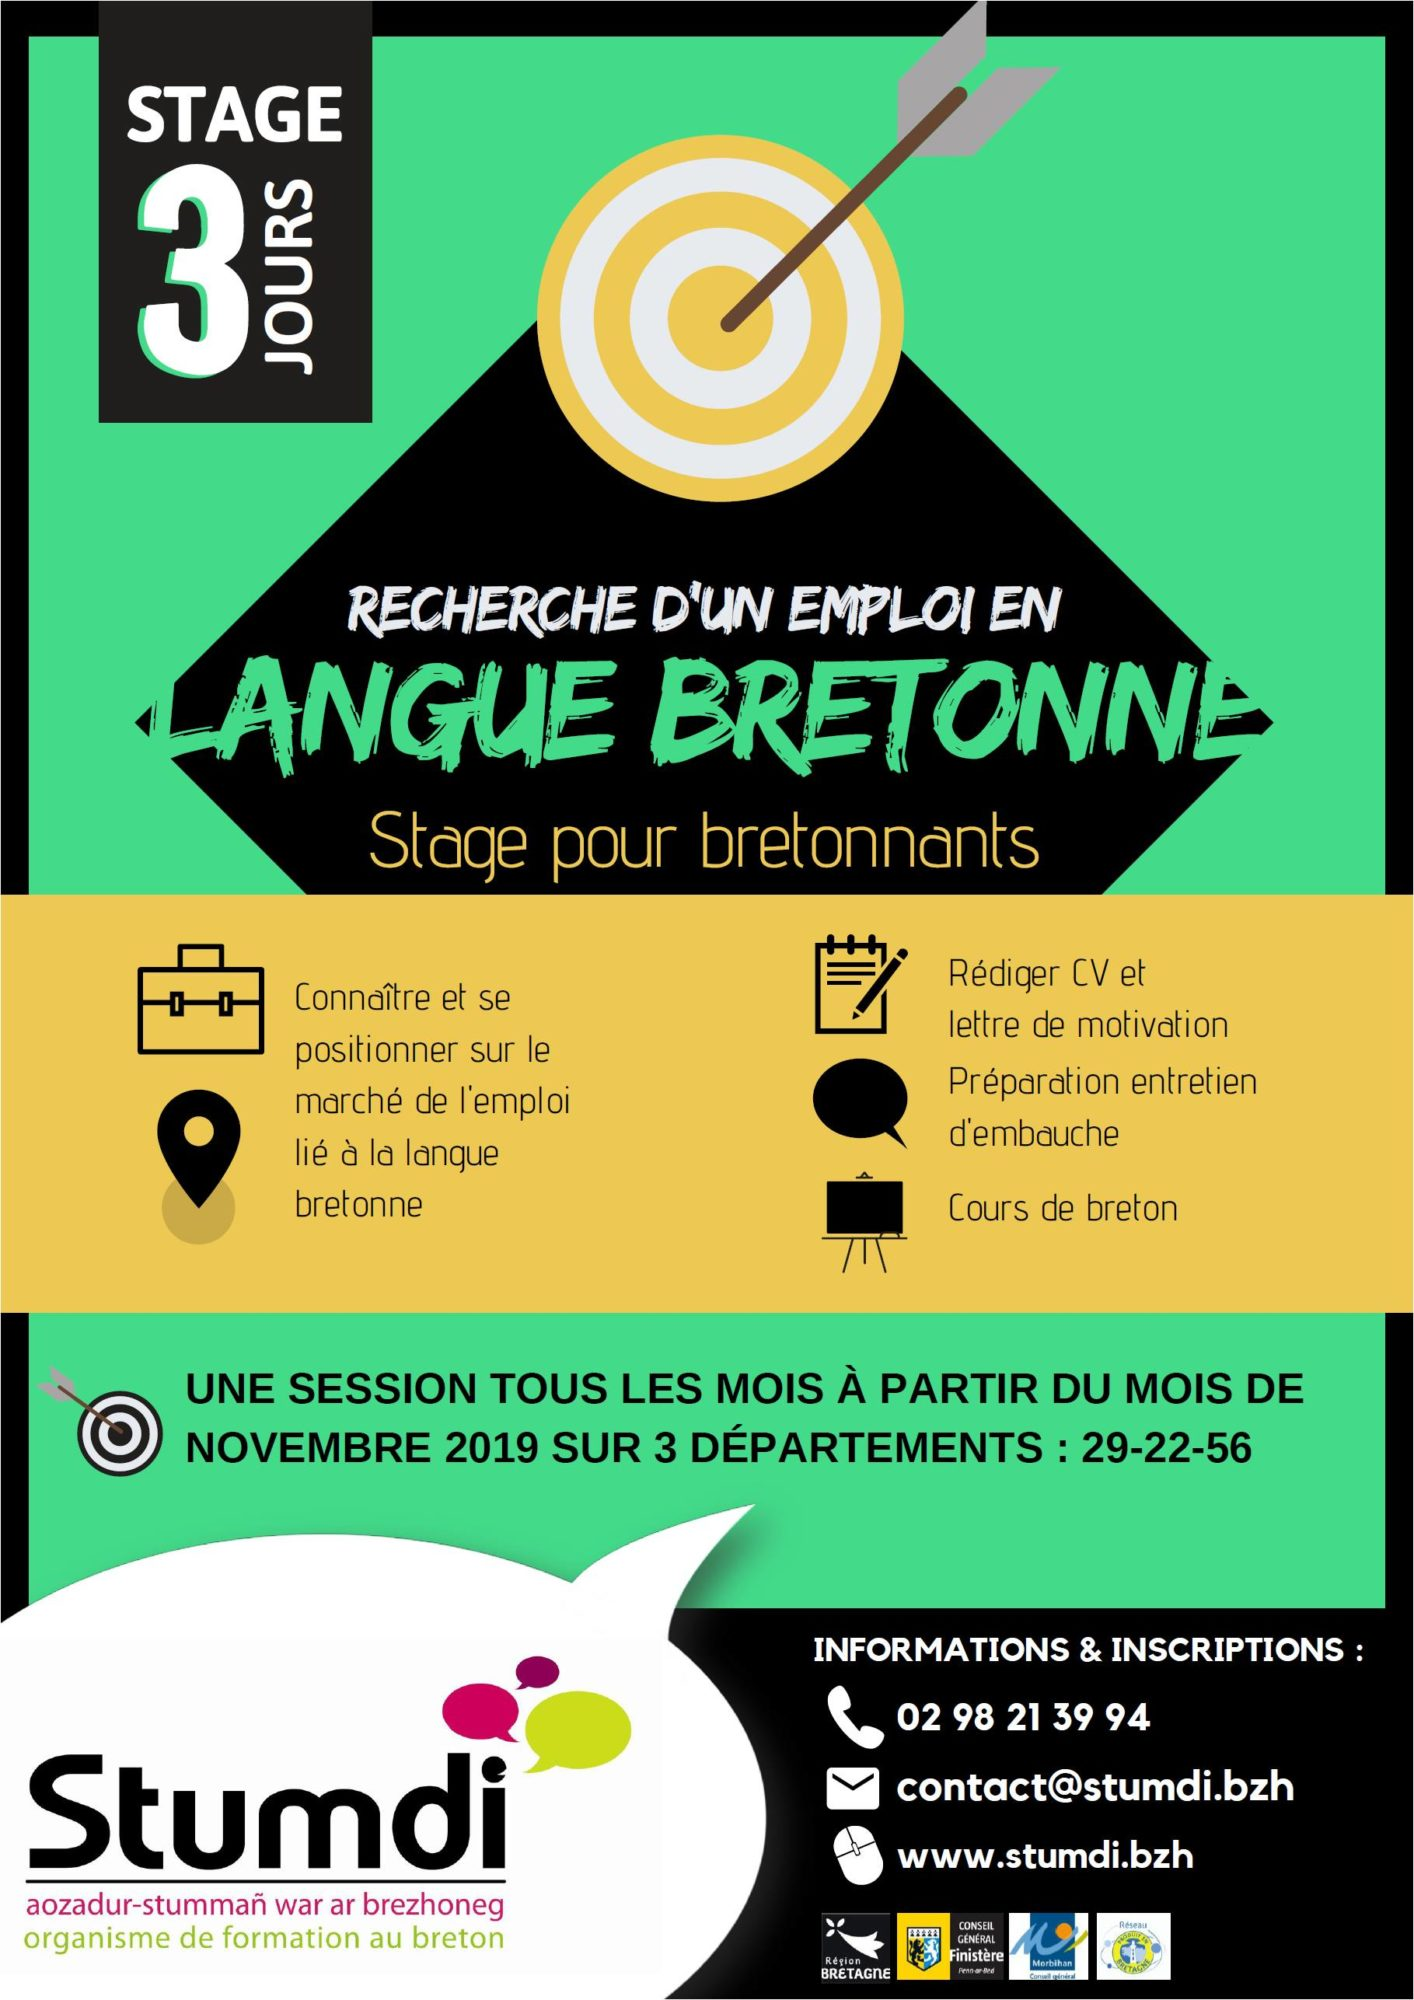 Stumdi centre de formation pour adultes en langue bretonne